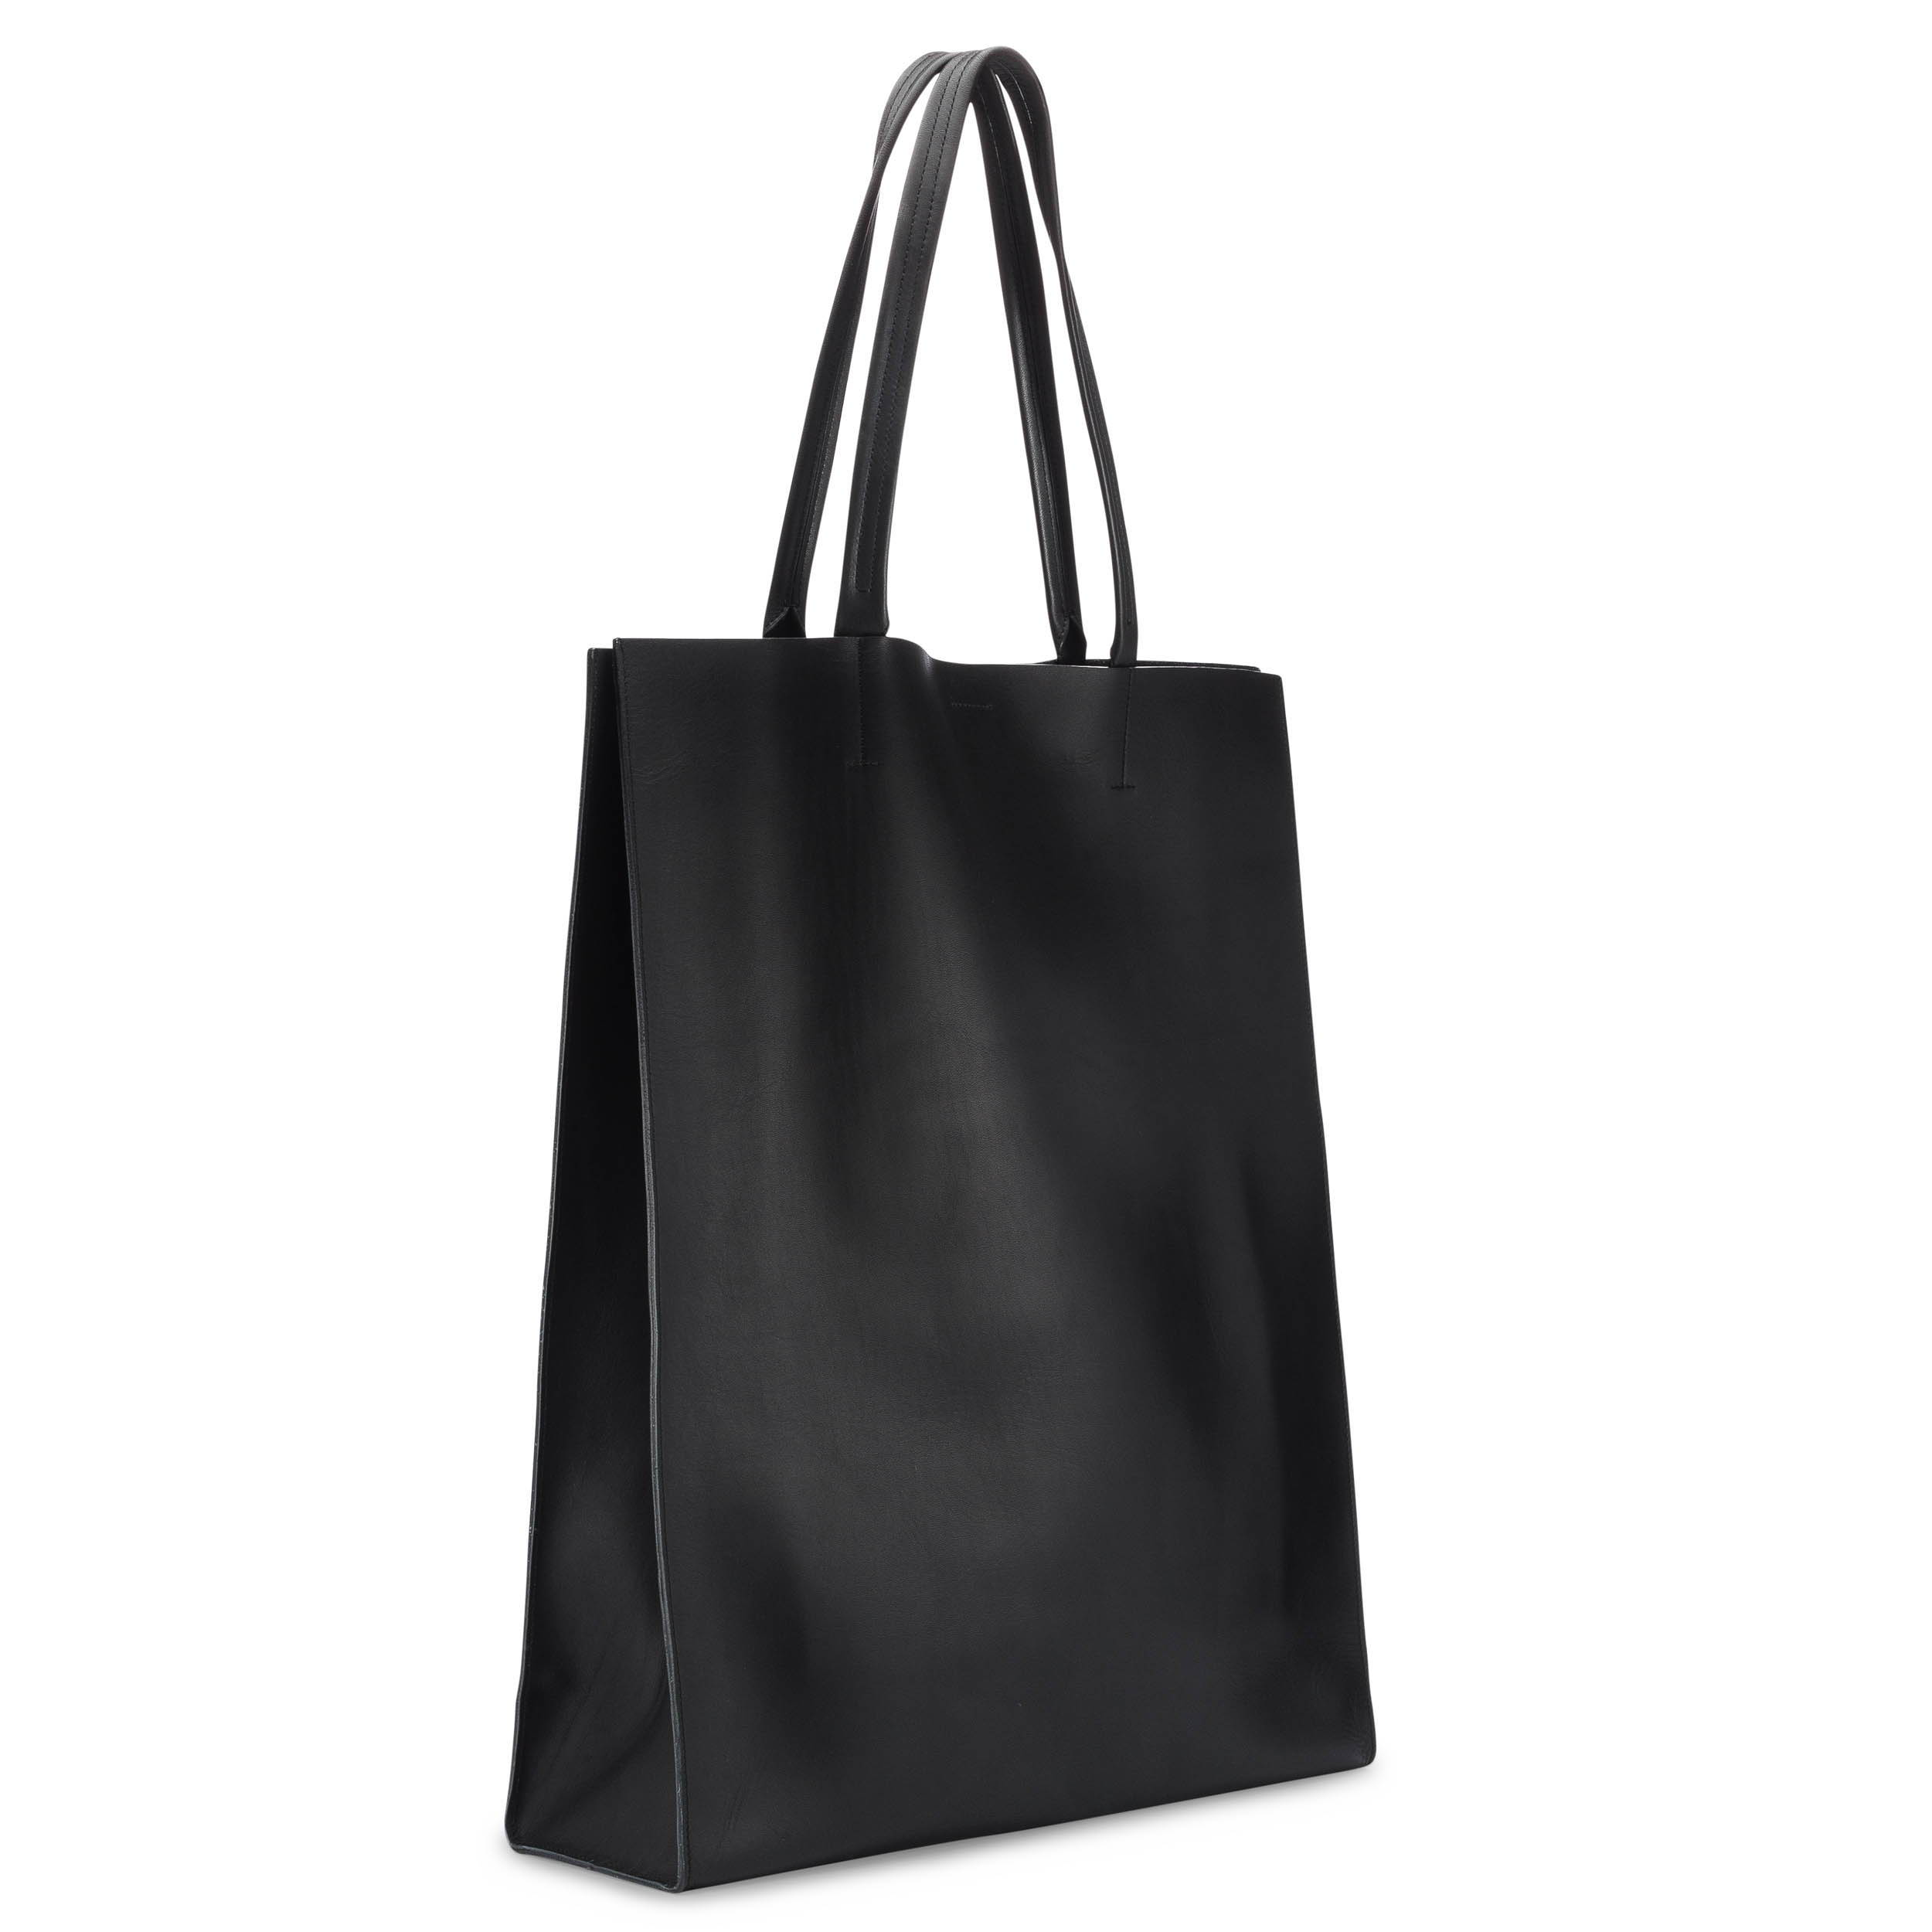 Lightweight leather market tote